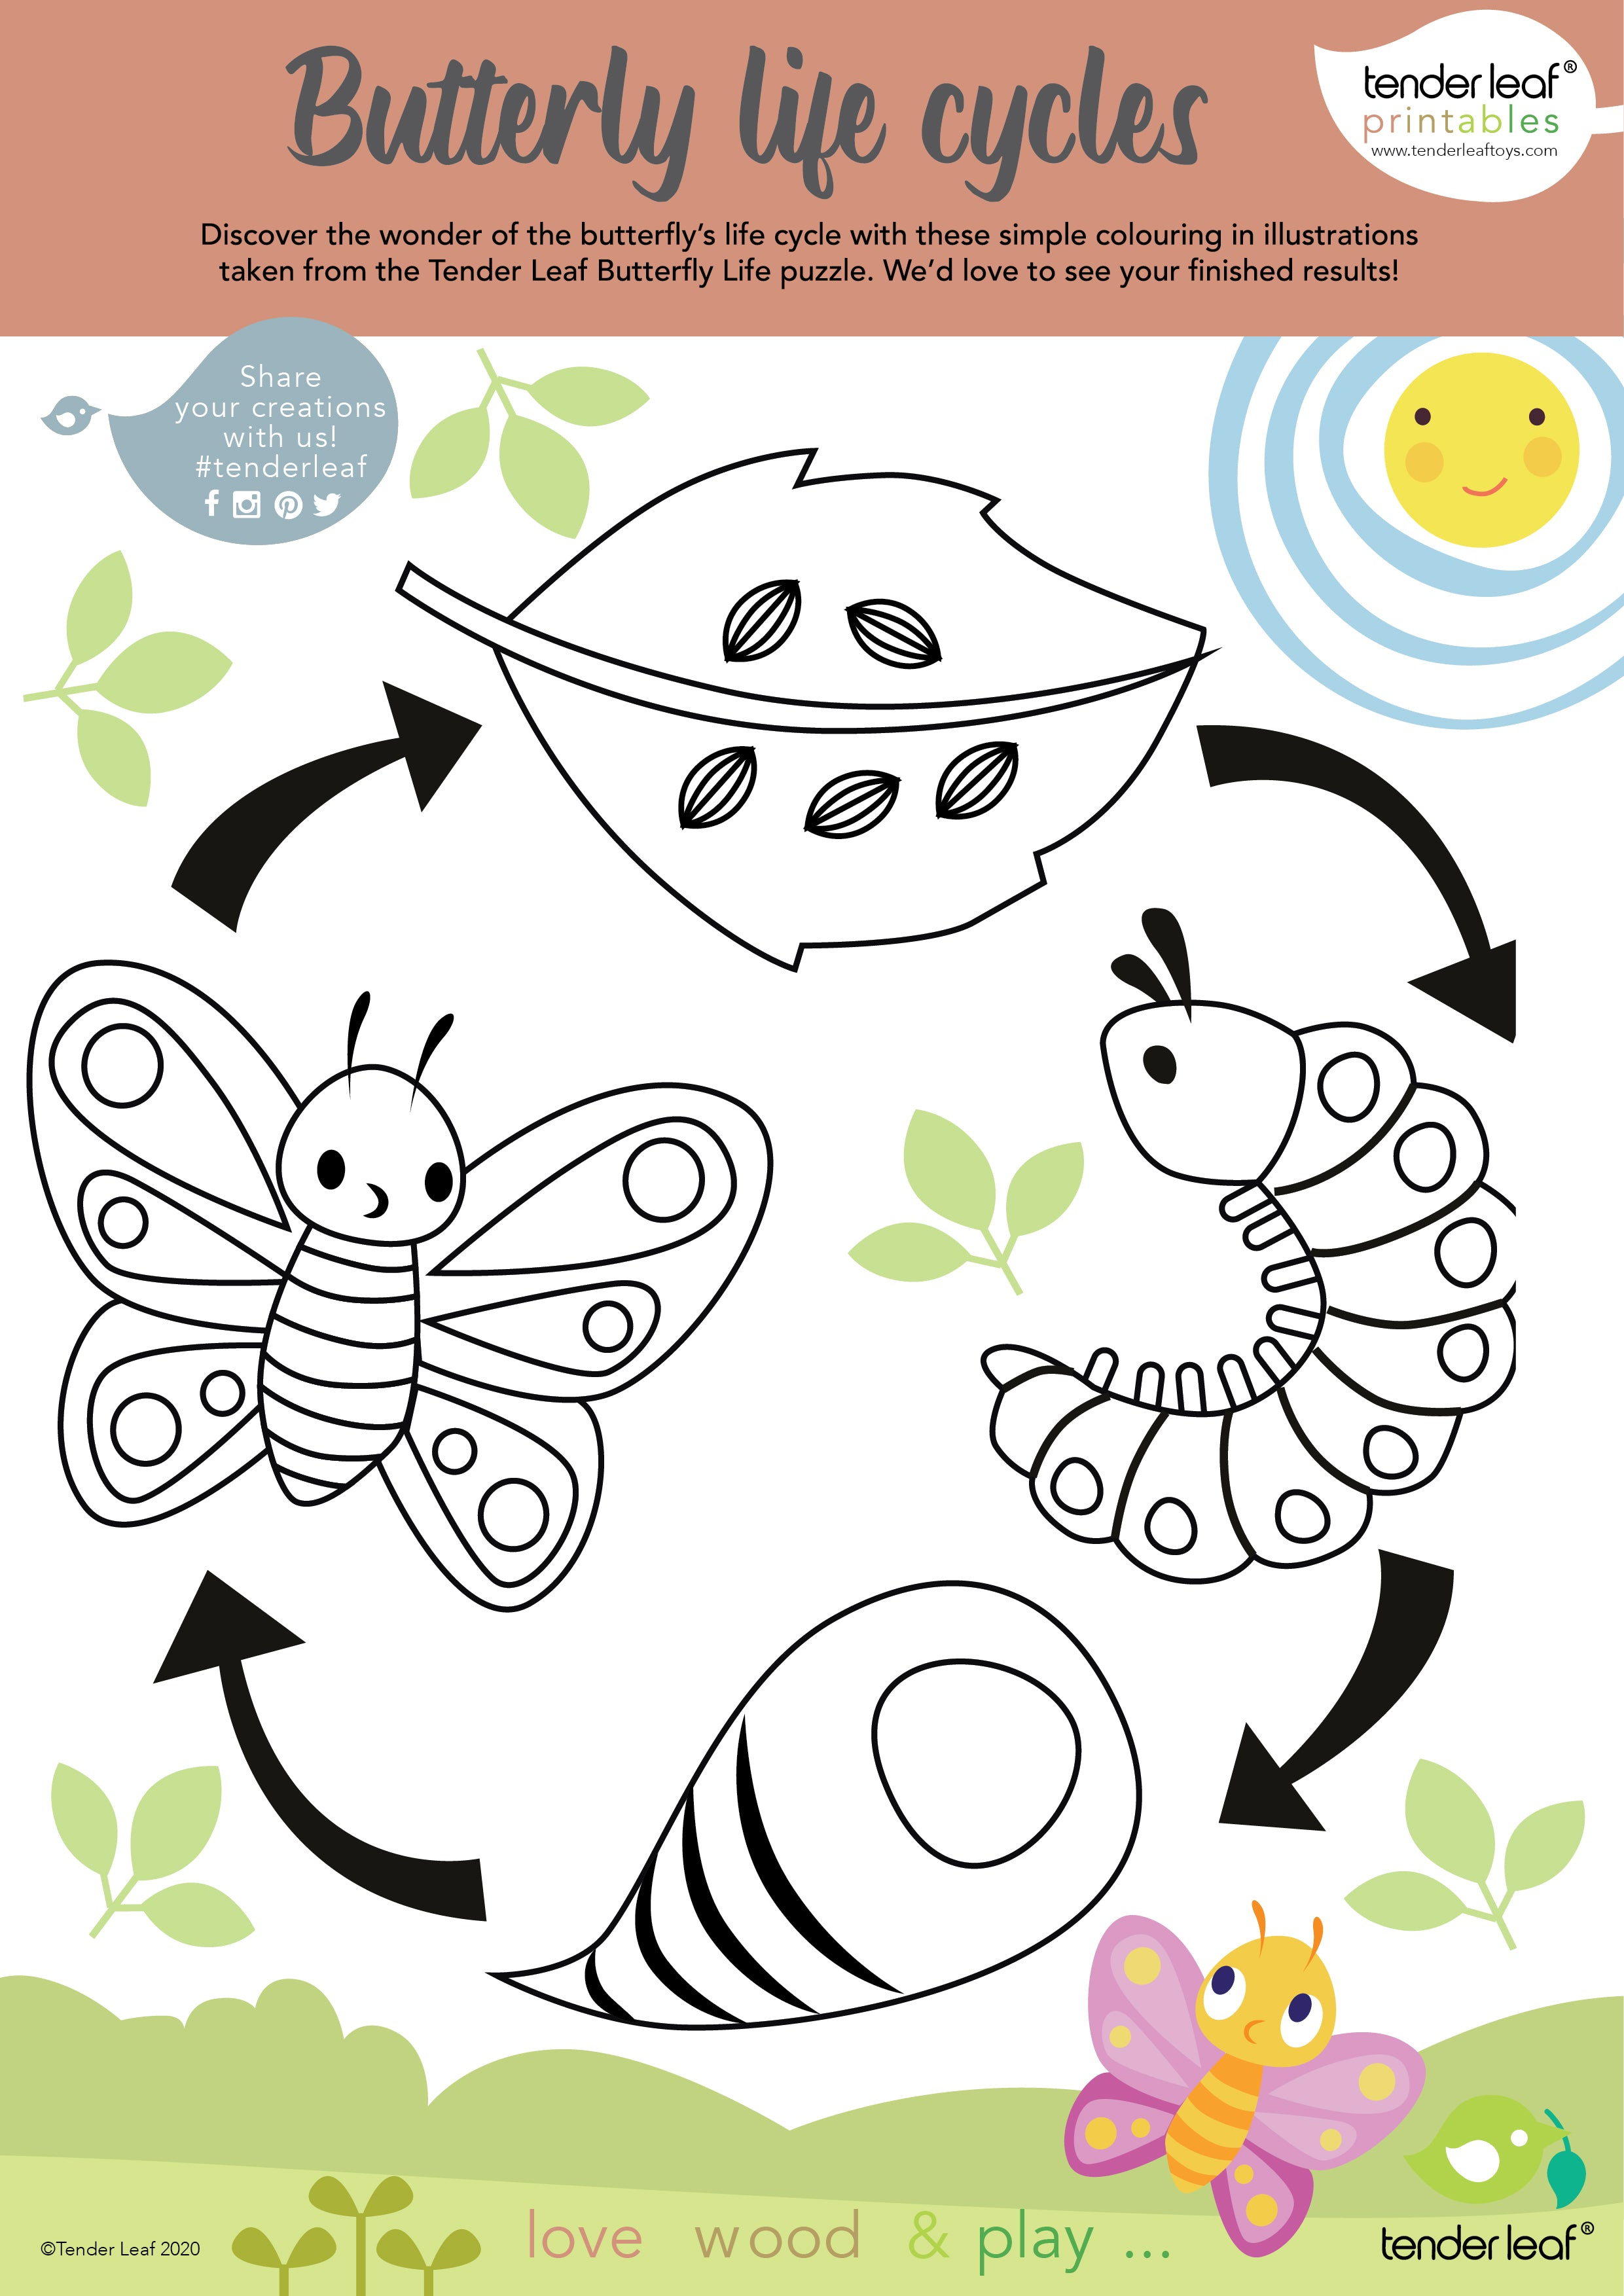 butterfly life cycle free download printable activity for children